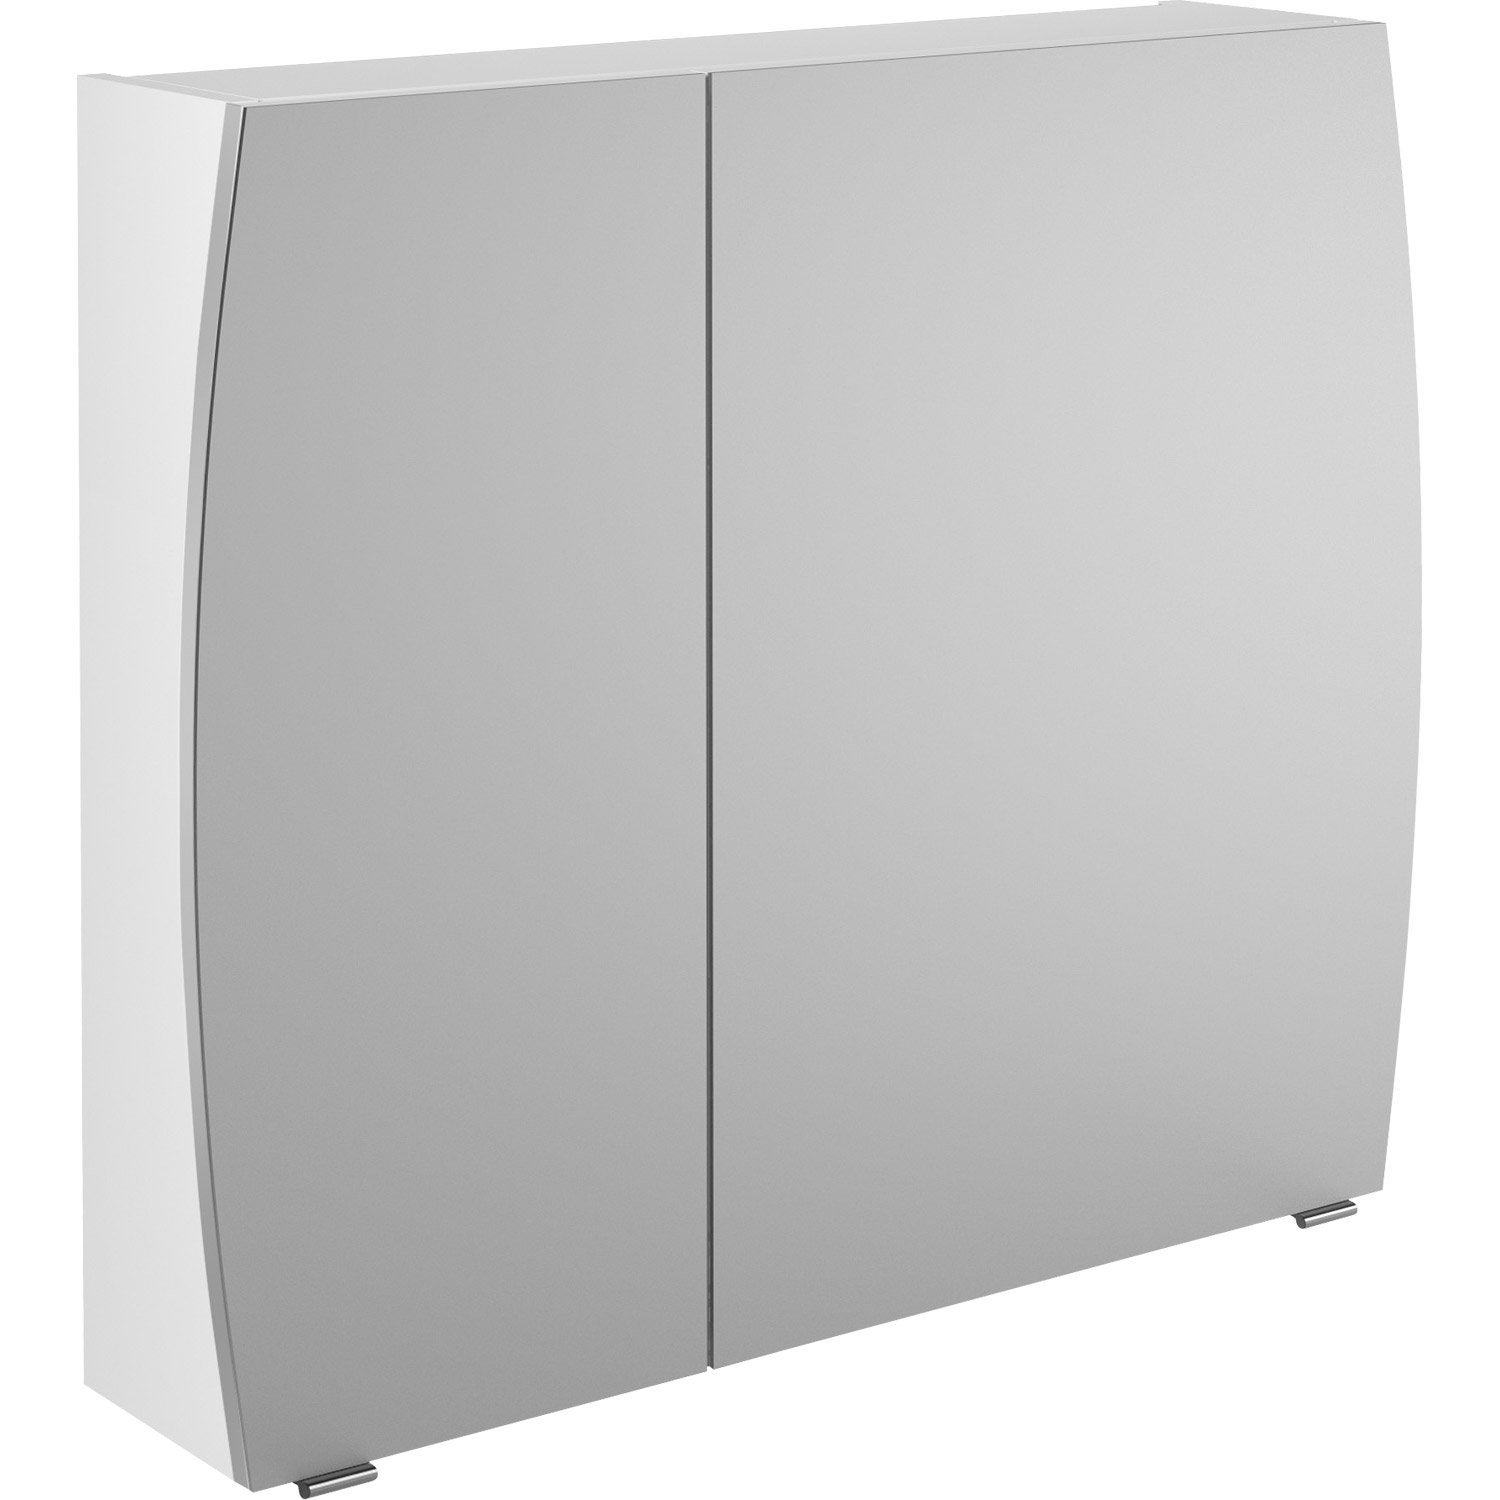 armoire de toilette l 80 cm blanc image leroy merlin. Black Bedroom Furniture Sets. Home Design Ideas